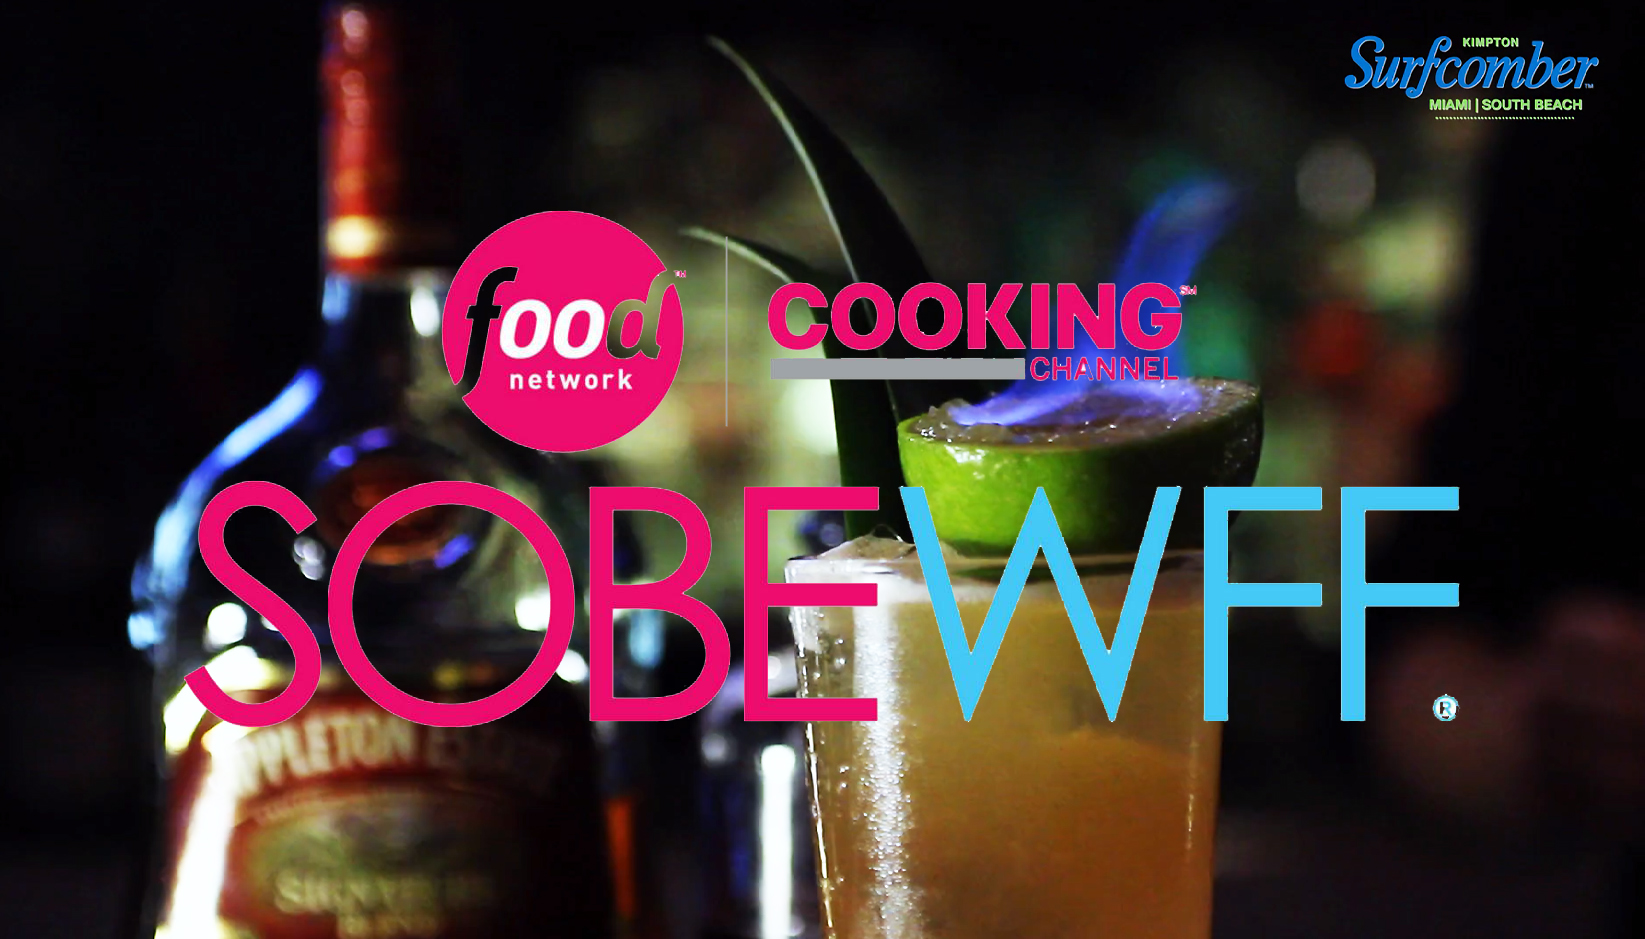 Video Hightlites for Tiki Showdown with Robert Irvine at Wine and Food Festival Miami Beach